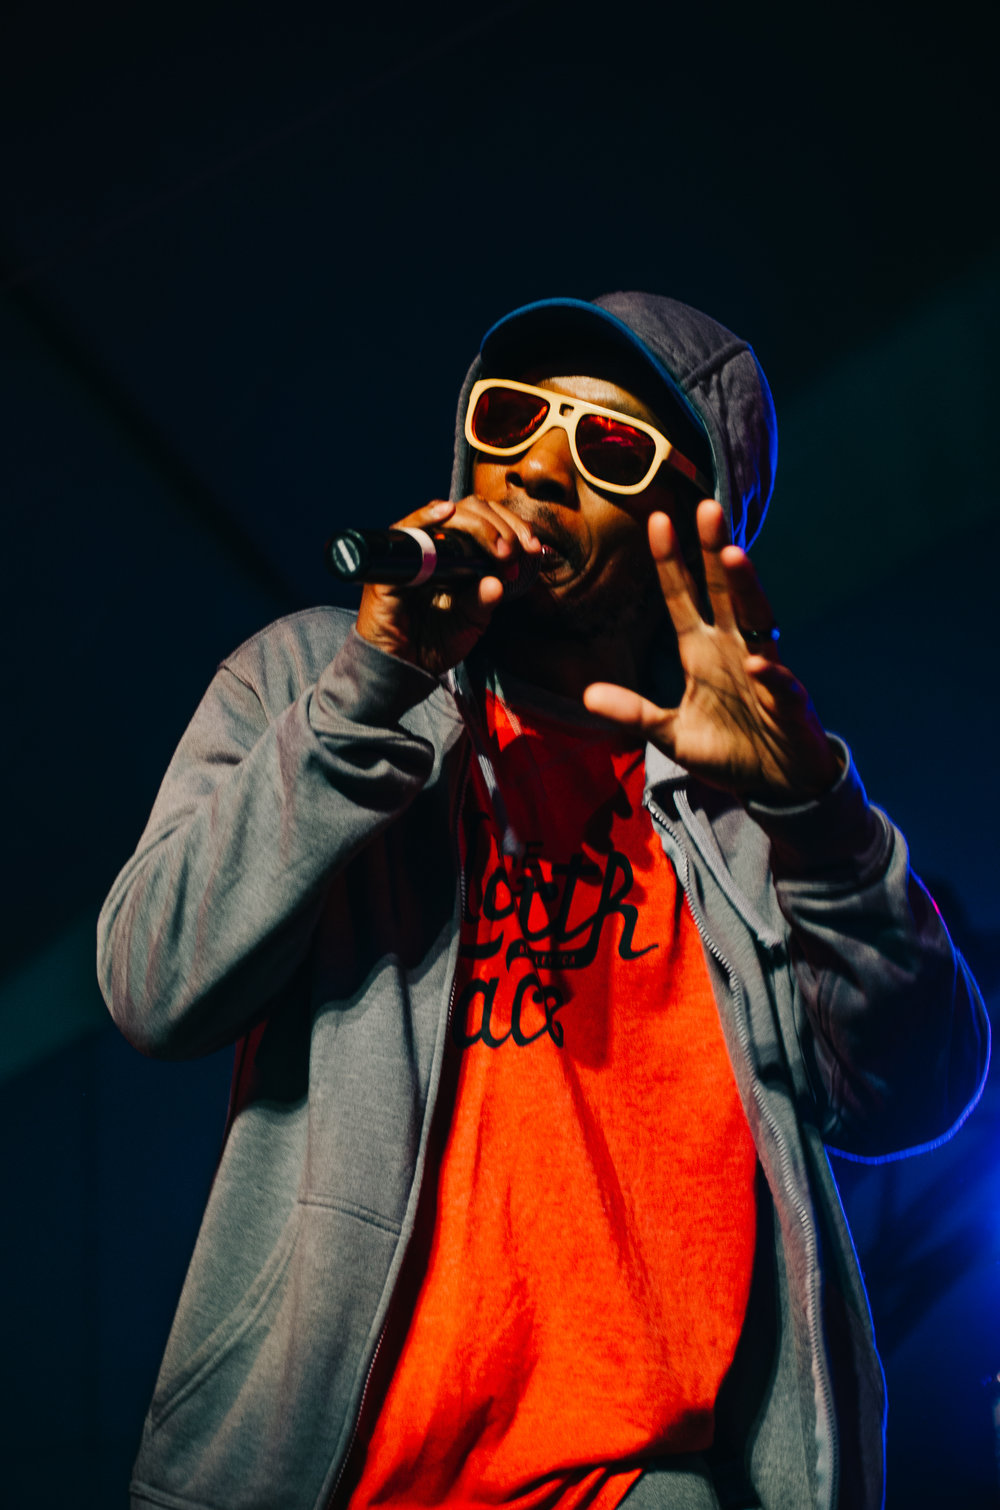 2_Del_the_Funky_Homosapien_Rifflandia-Timothy_Nguyen-20160917 (4 of 16).jpg